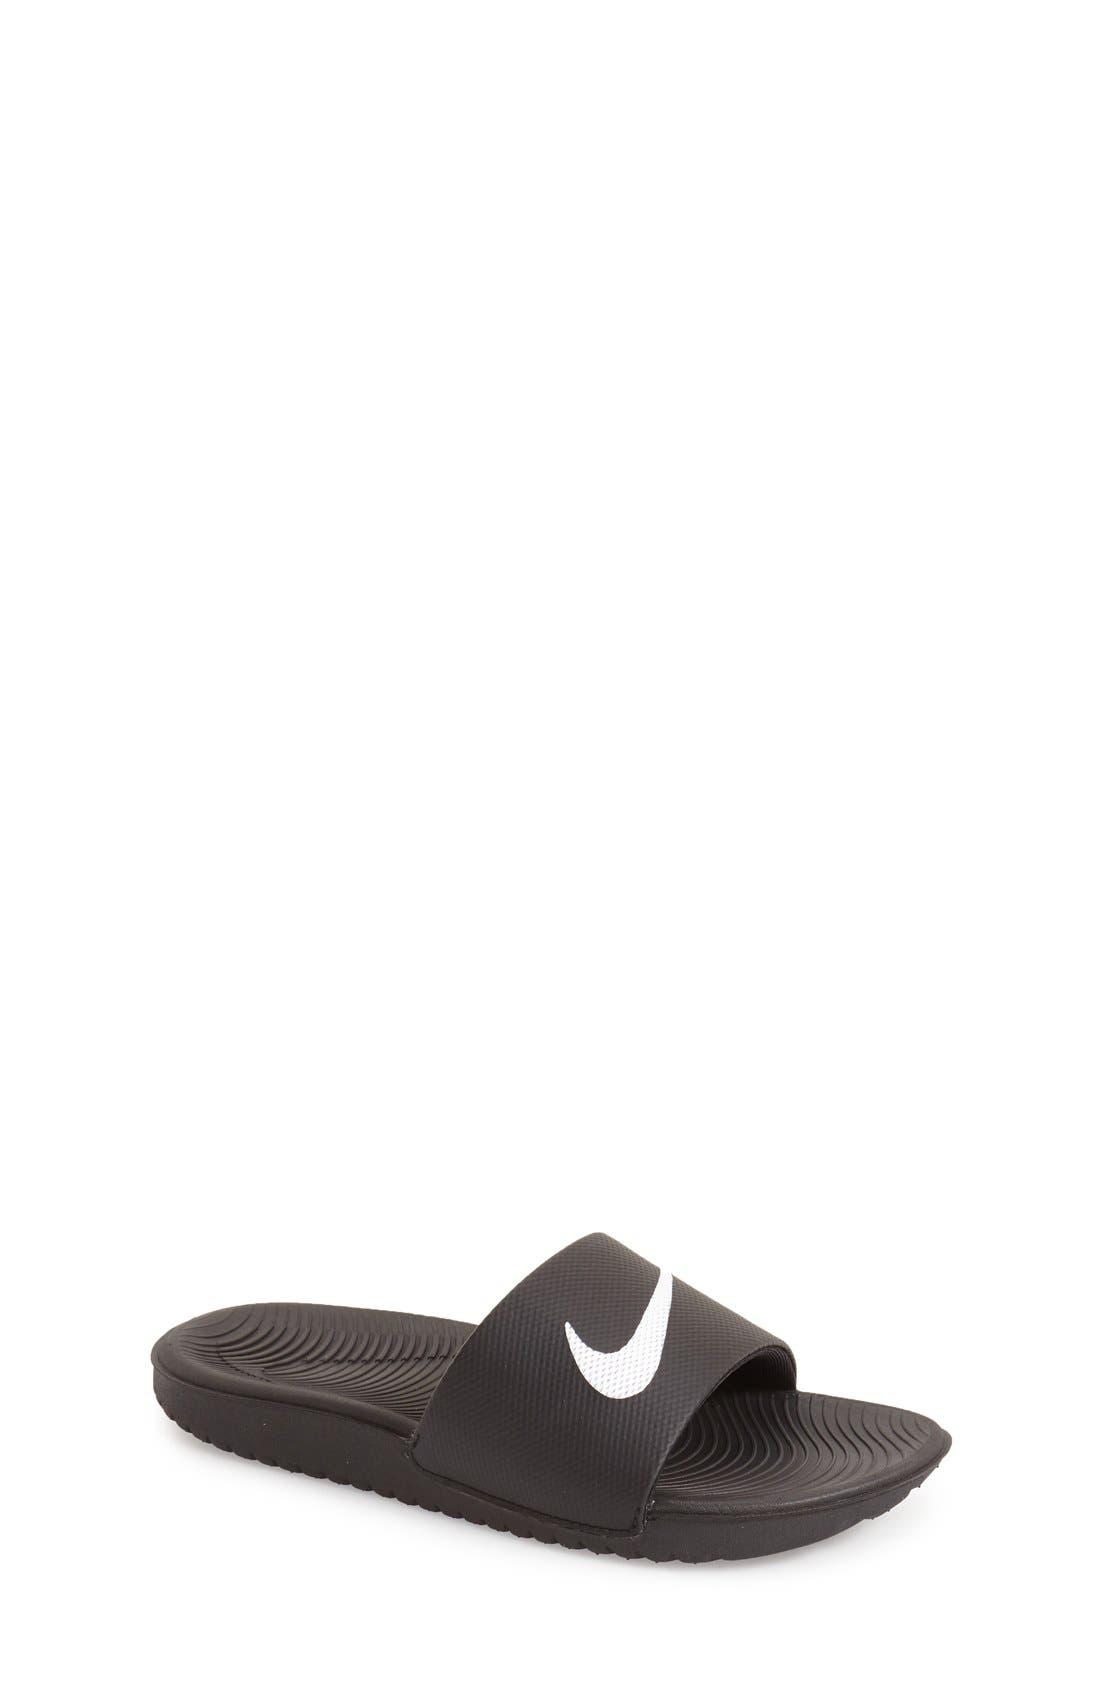 555881b44 UPC 676556451155 - Nike Kawa Slide Boys Sandals - Little Kids Big ...